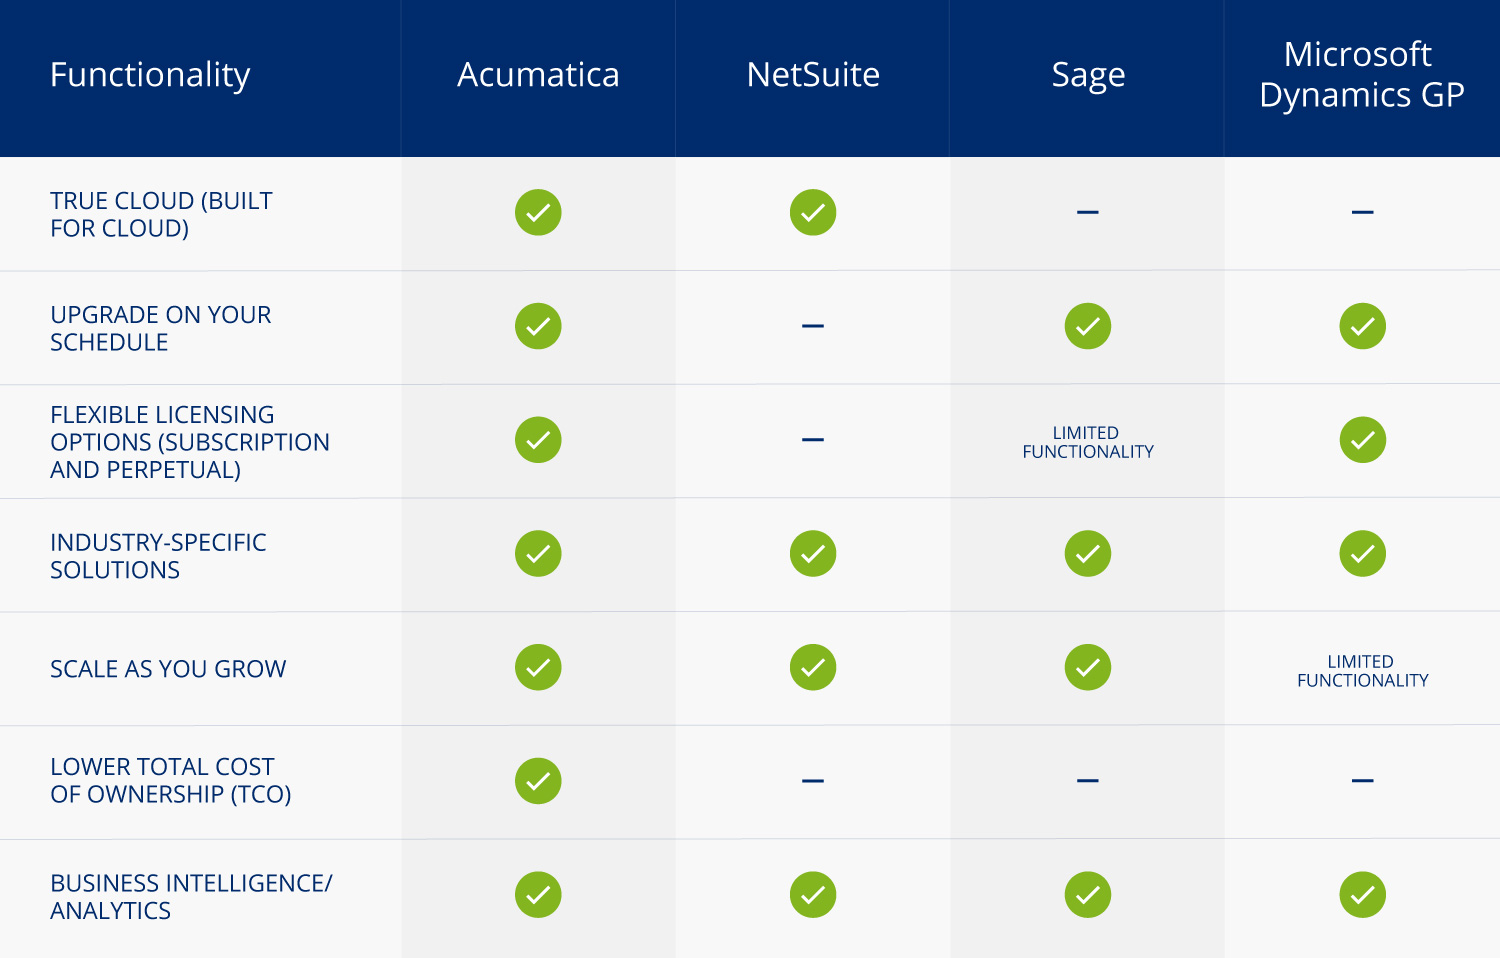 table comparing Acumatica Cloud ERP software functionality against NetSuite, Sage and Microsoft Dynamics GP